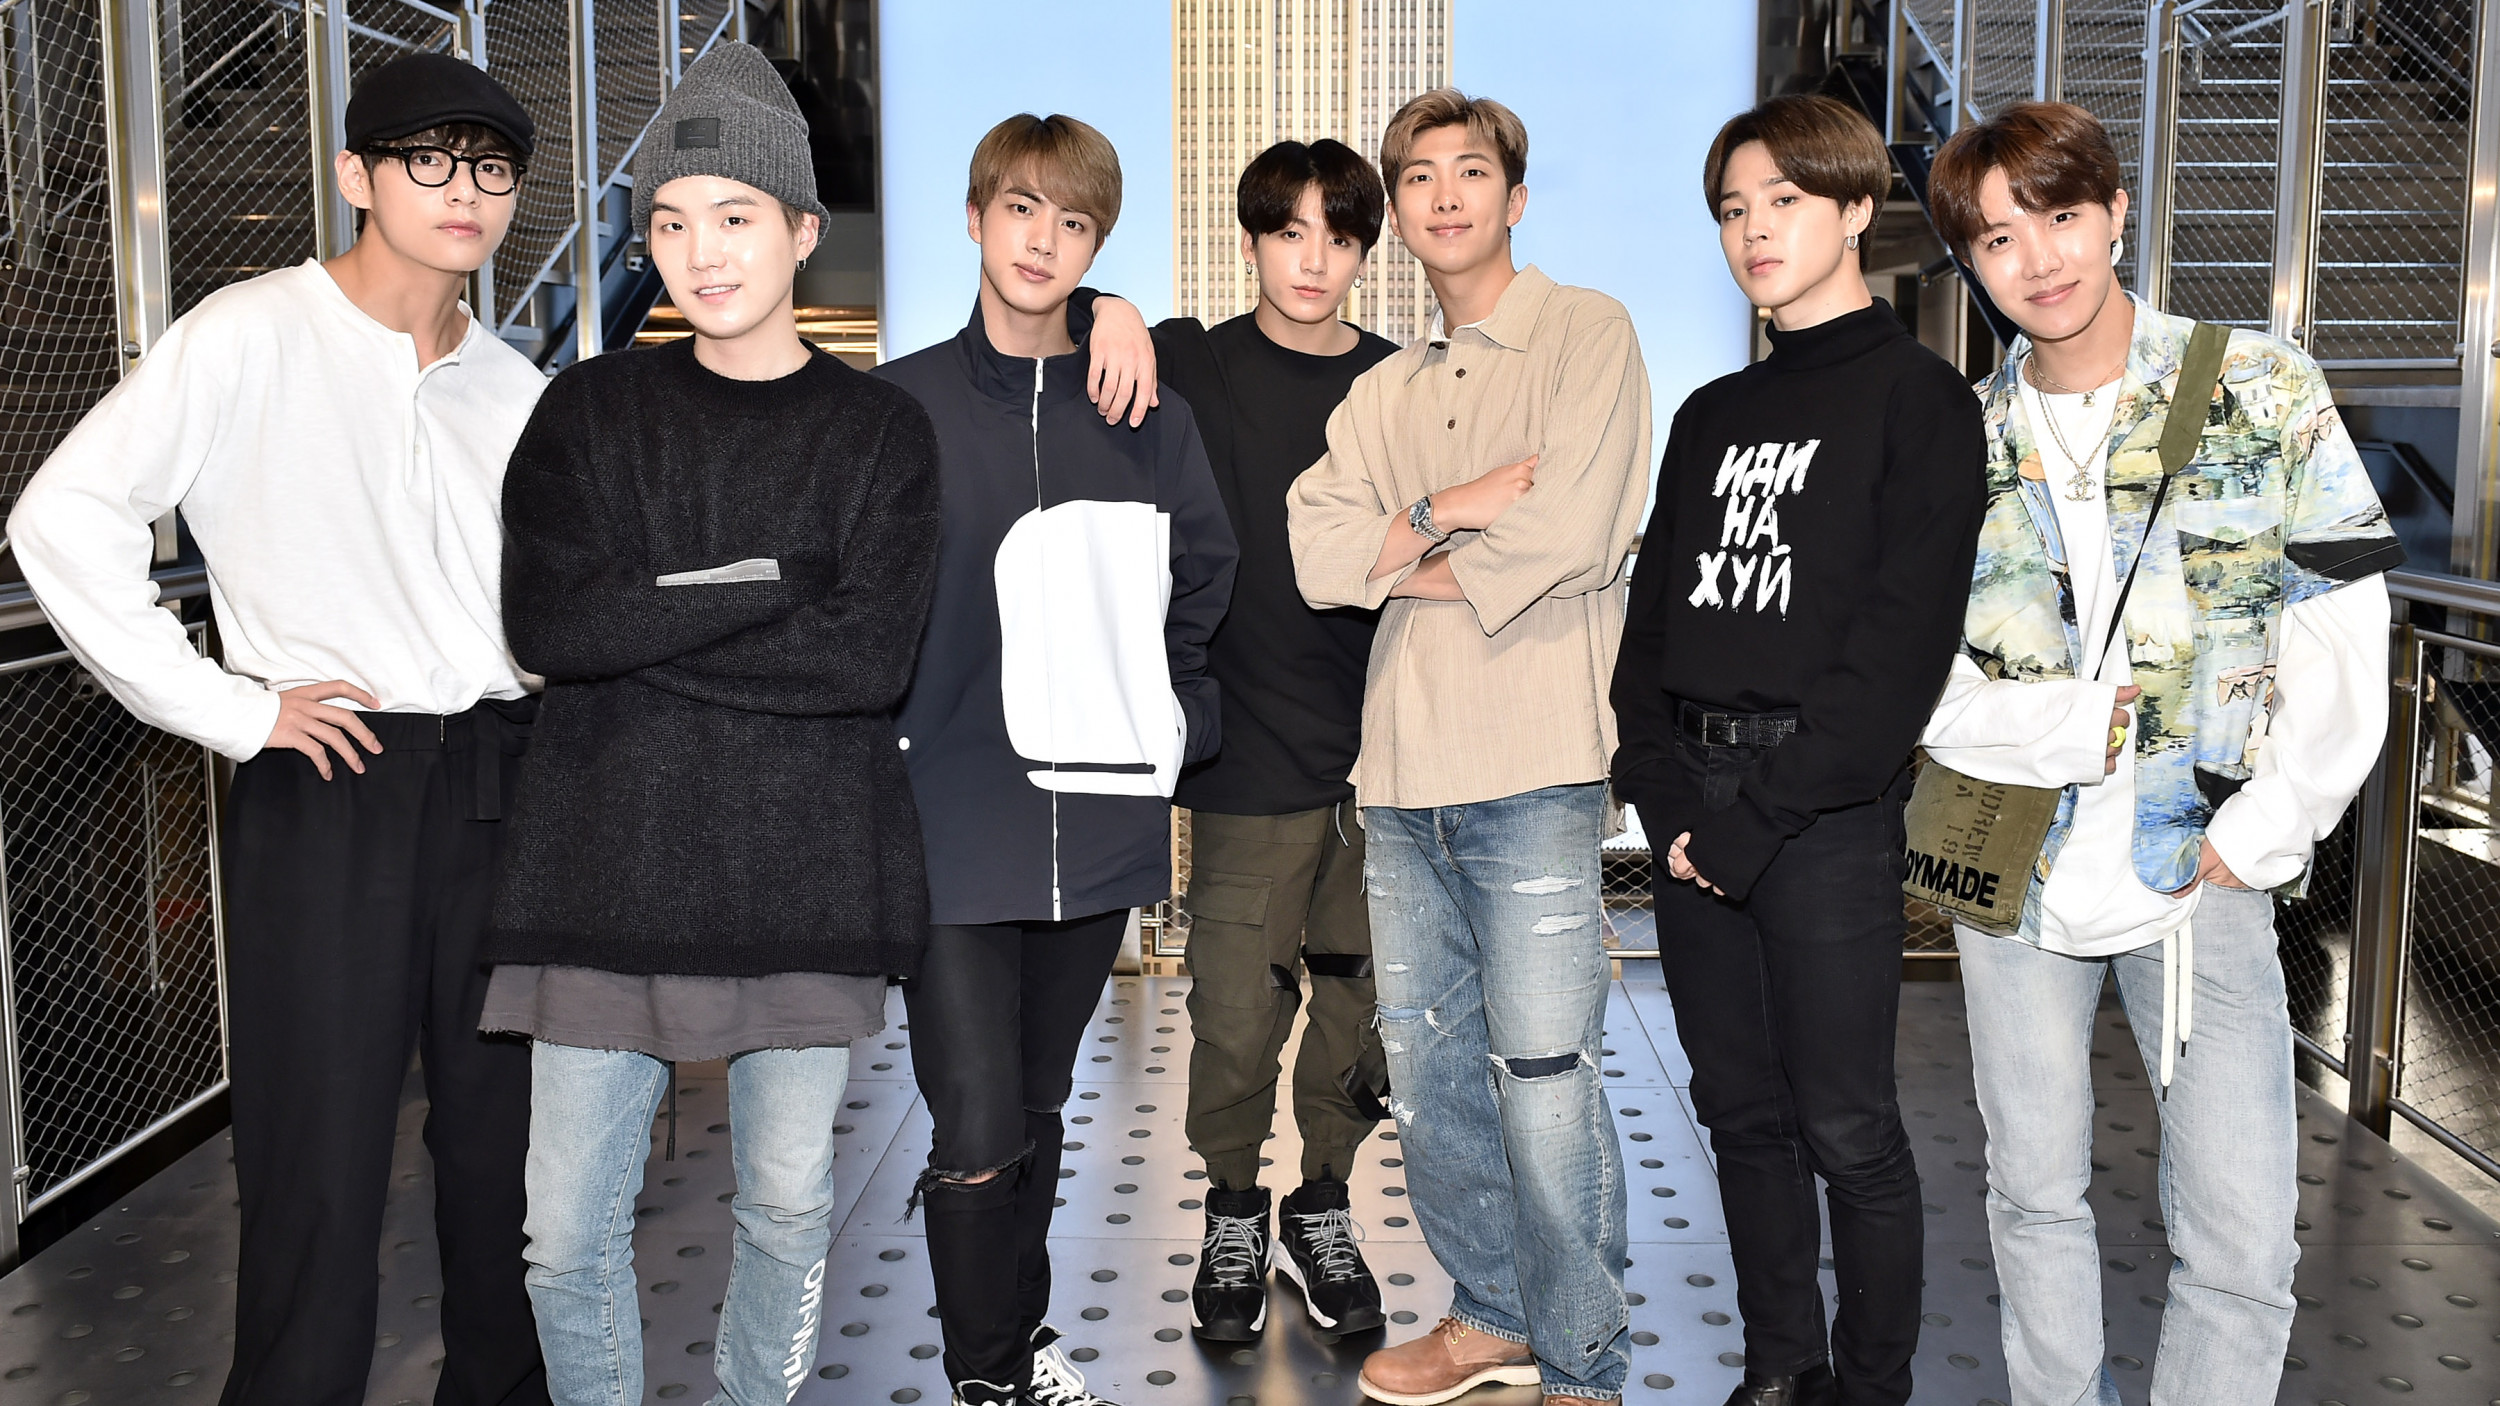 BTS Fans Encourage Others To Let K-Pop Group Relax Without Fear of